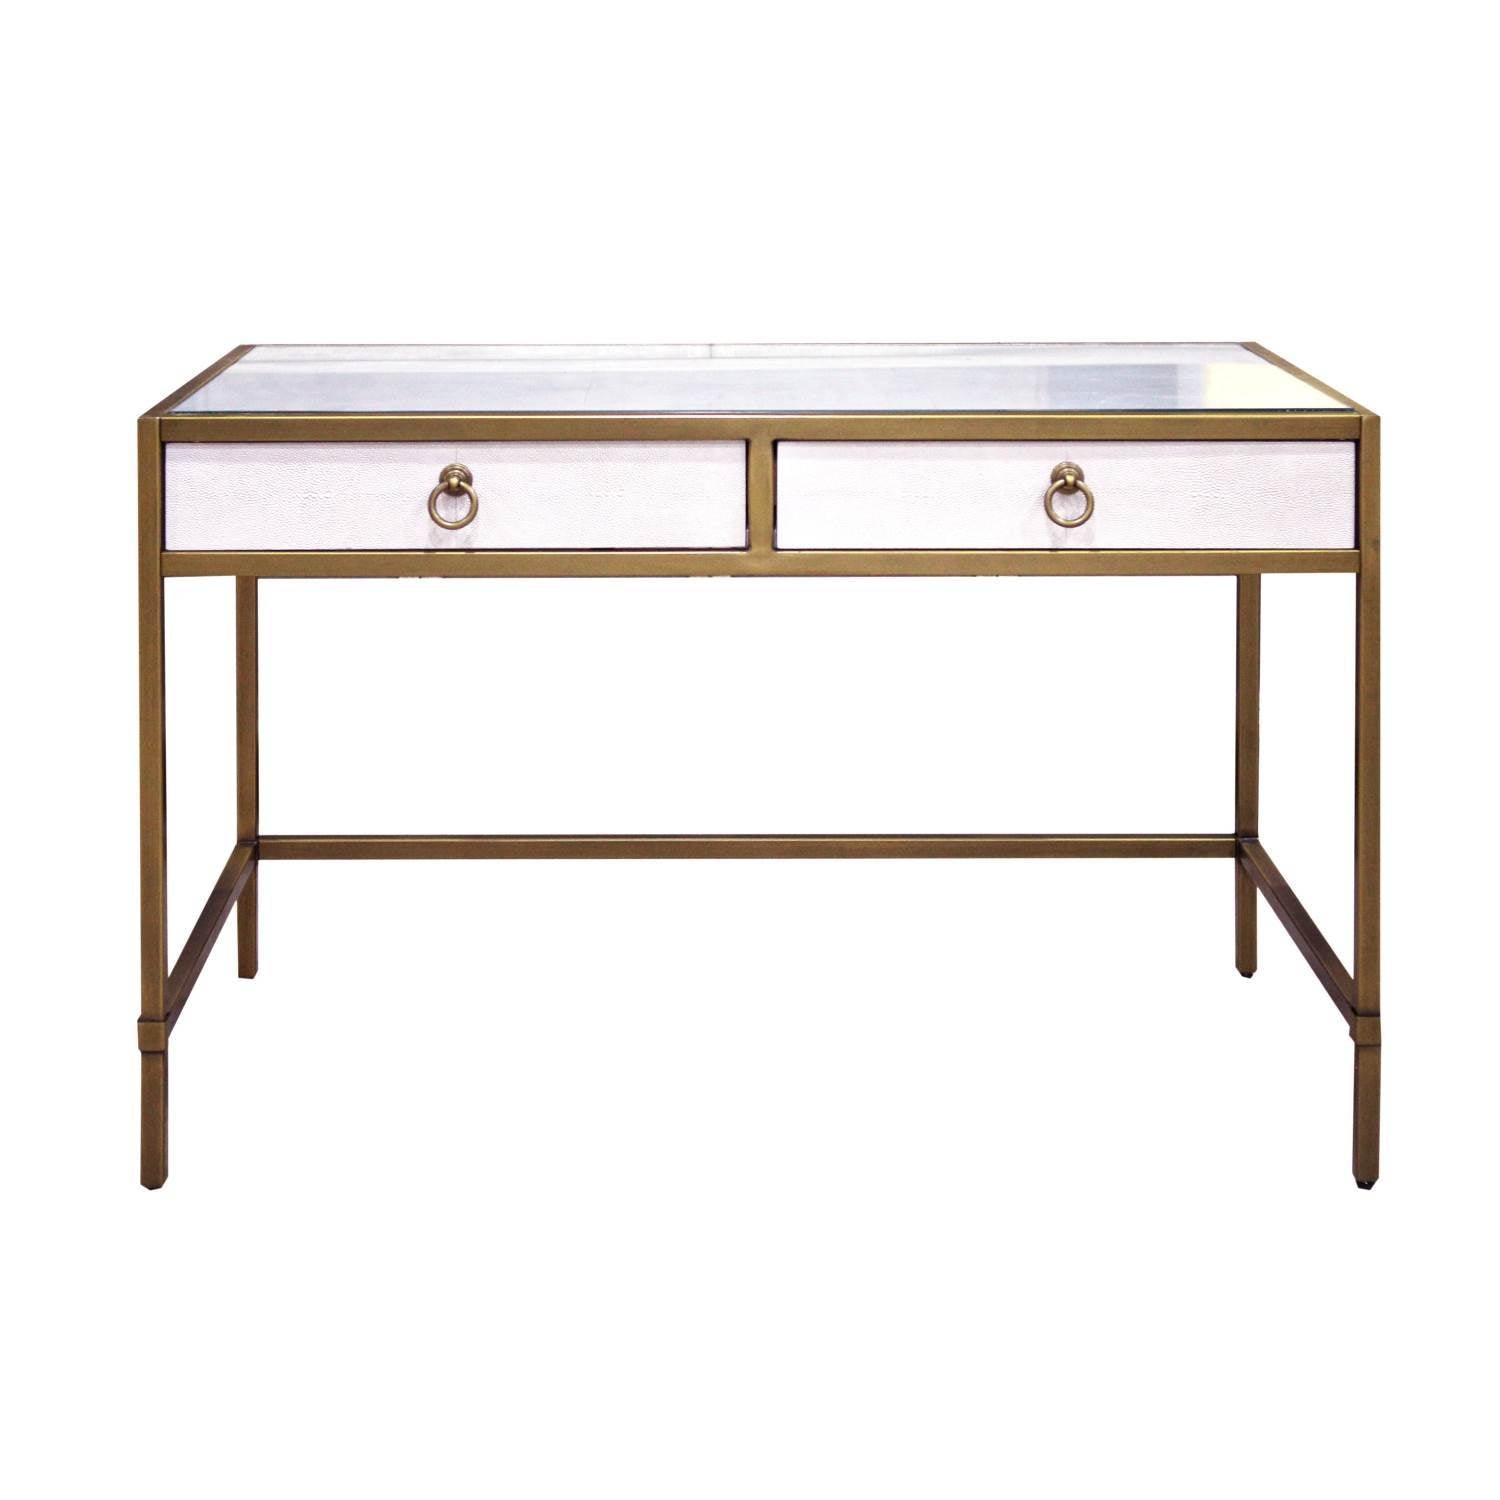 Strand Shagreen Writing Desk in White Shagreen